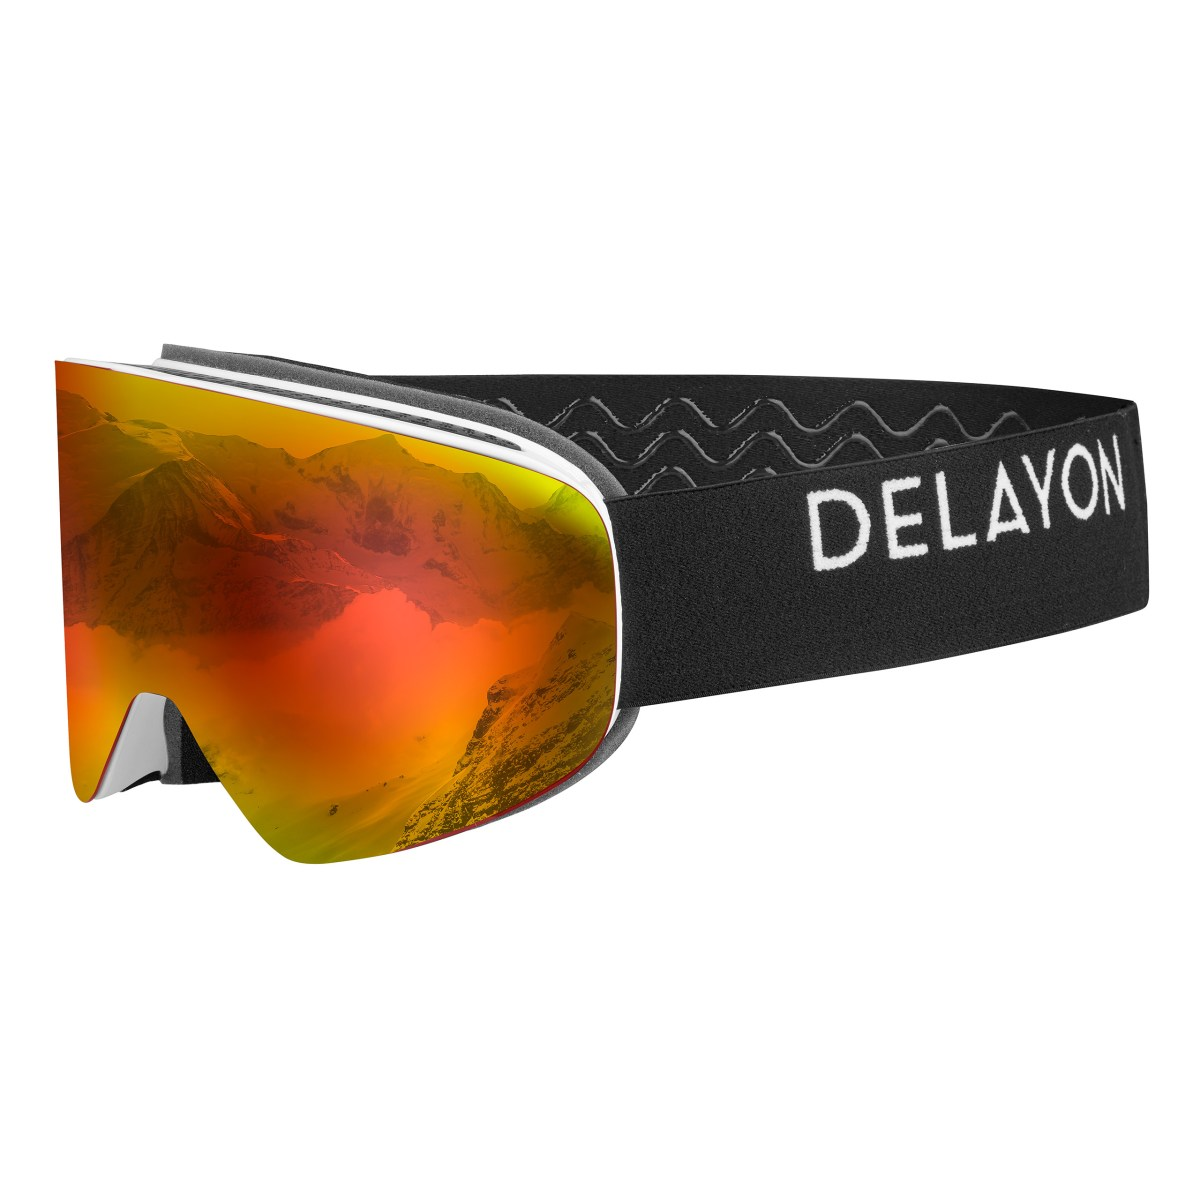 DELAYON Eyewear Core 2.0 Goggle White Black Space Fire